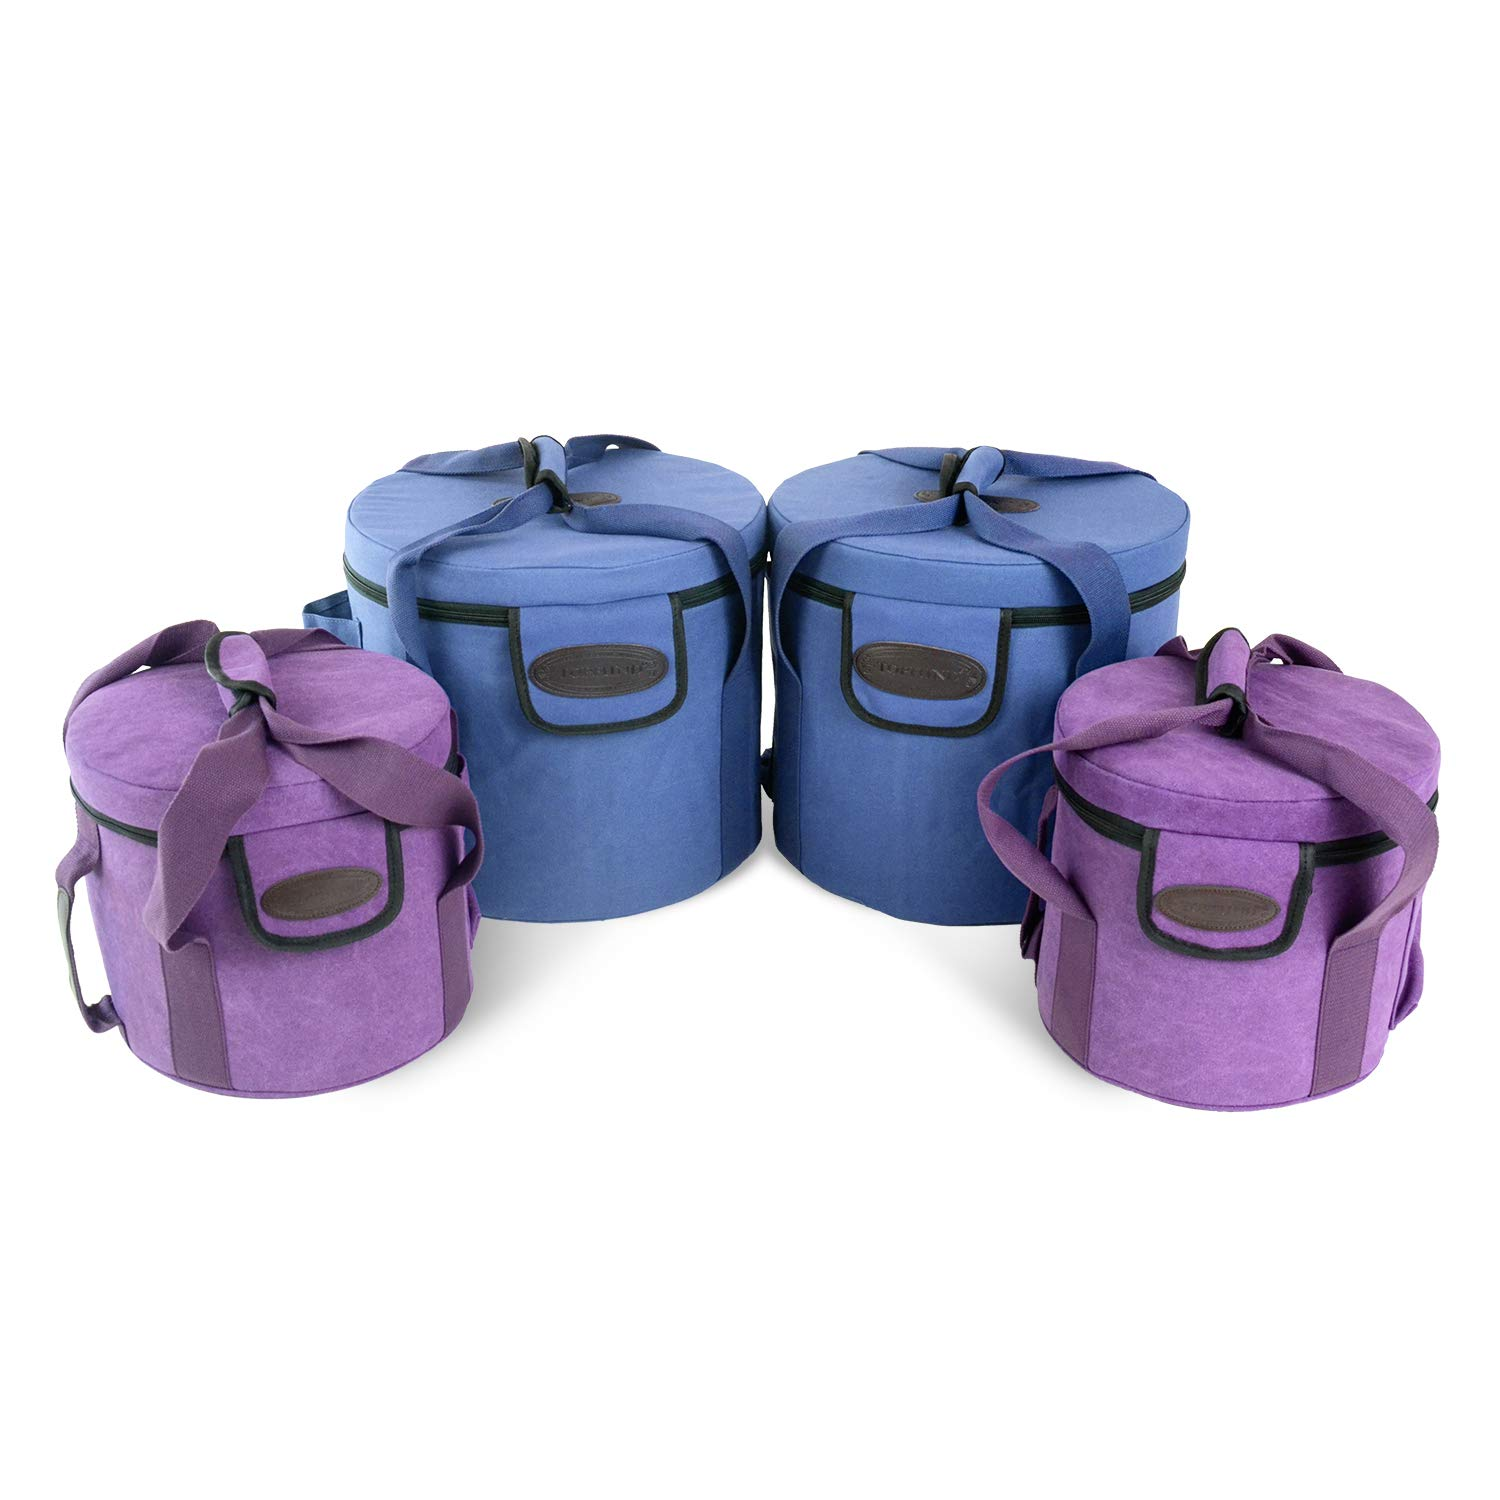 TOPFUND Heavy Duty Padded Carrying Cases Set for 7 Chakra Singing Bowls Set 8-12 inch by TOPFUND